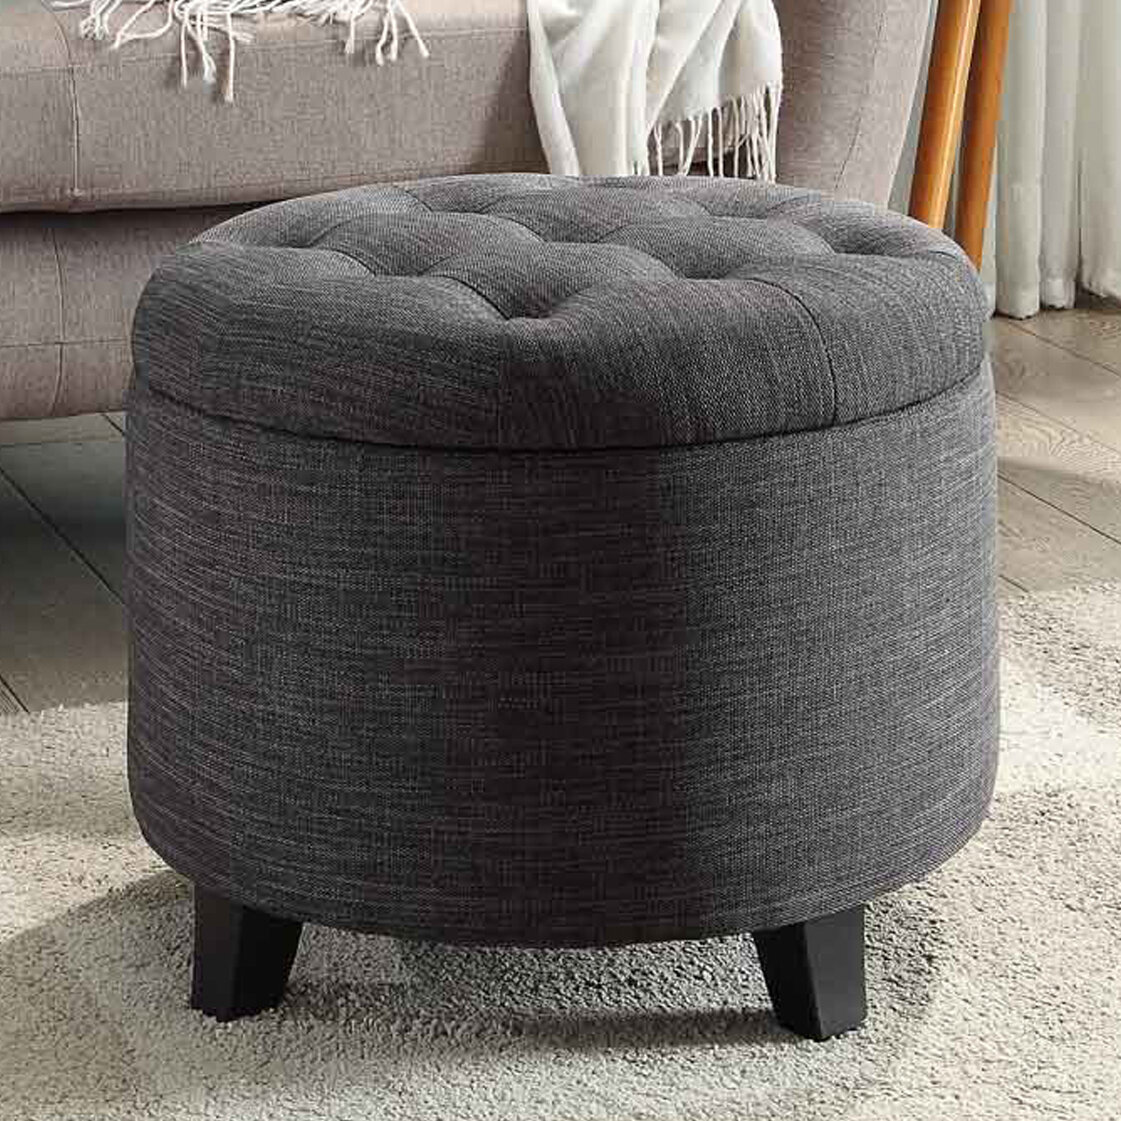 Wondrous Tufted Storage Ottoman Machost Co Dining Chair Design Ideas Machostcouk